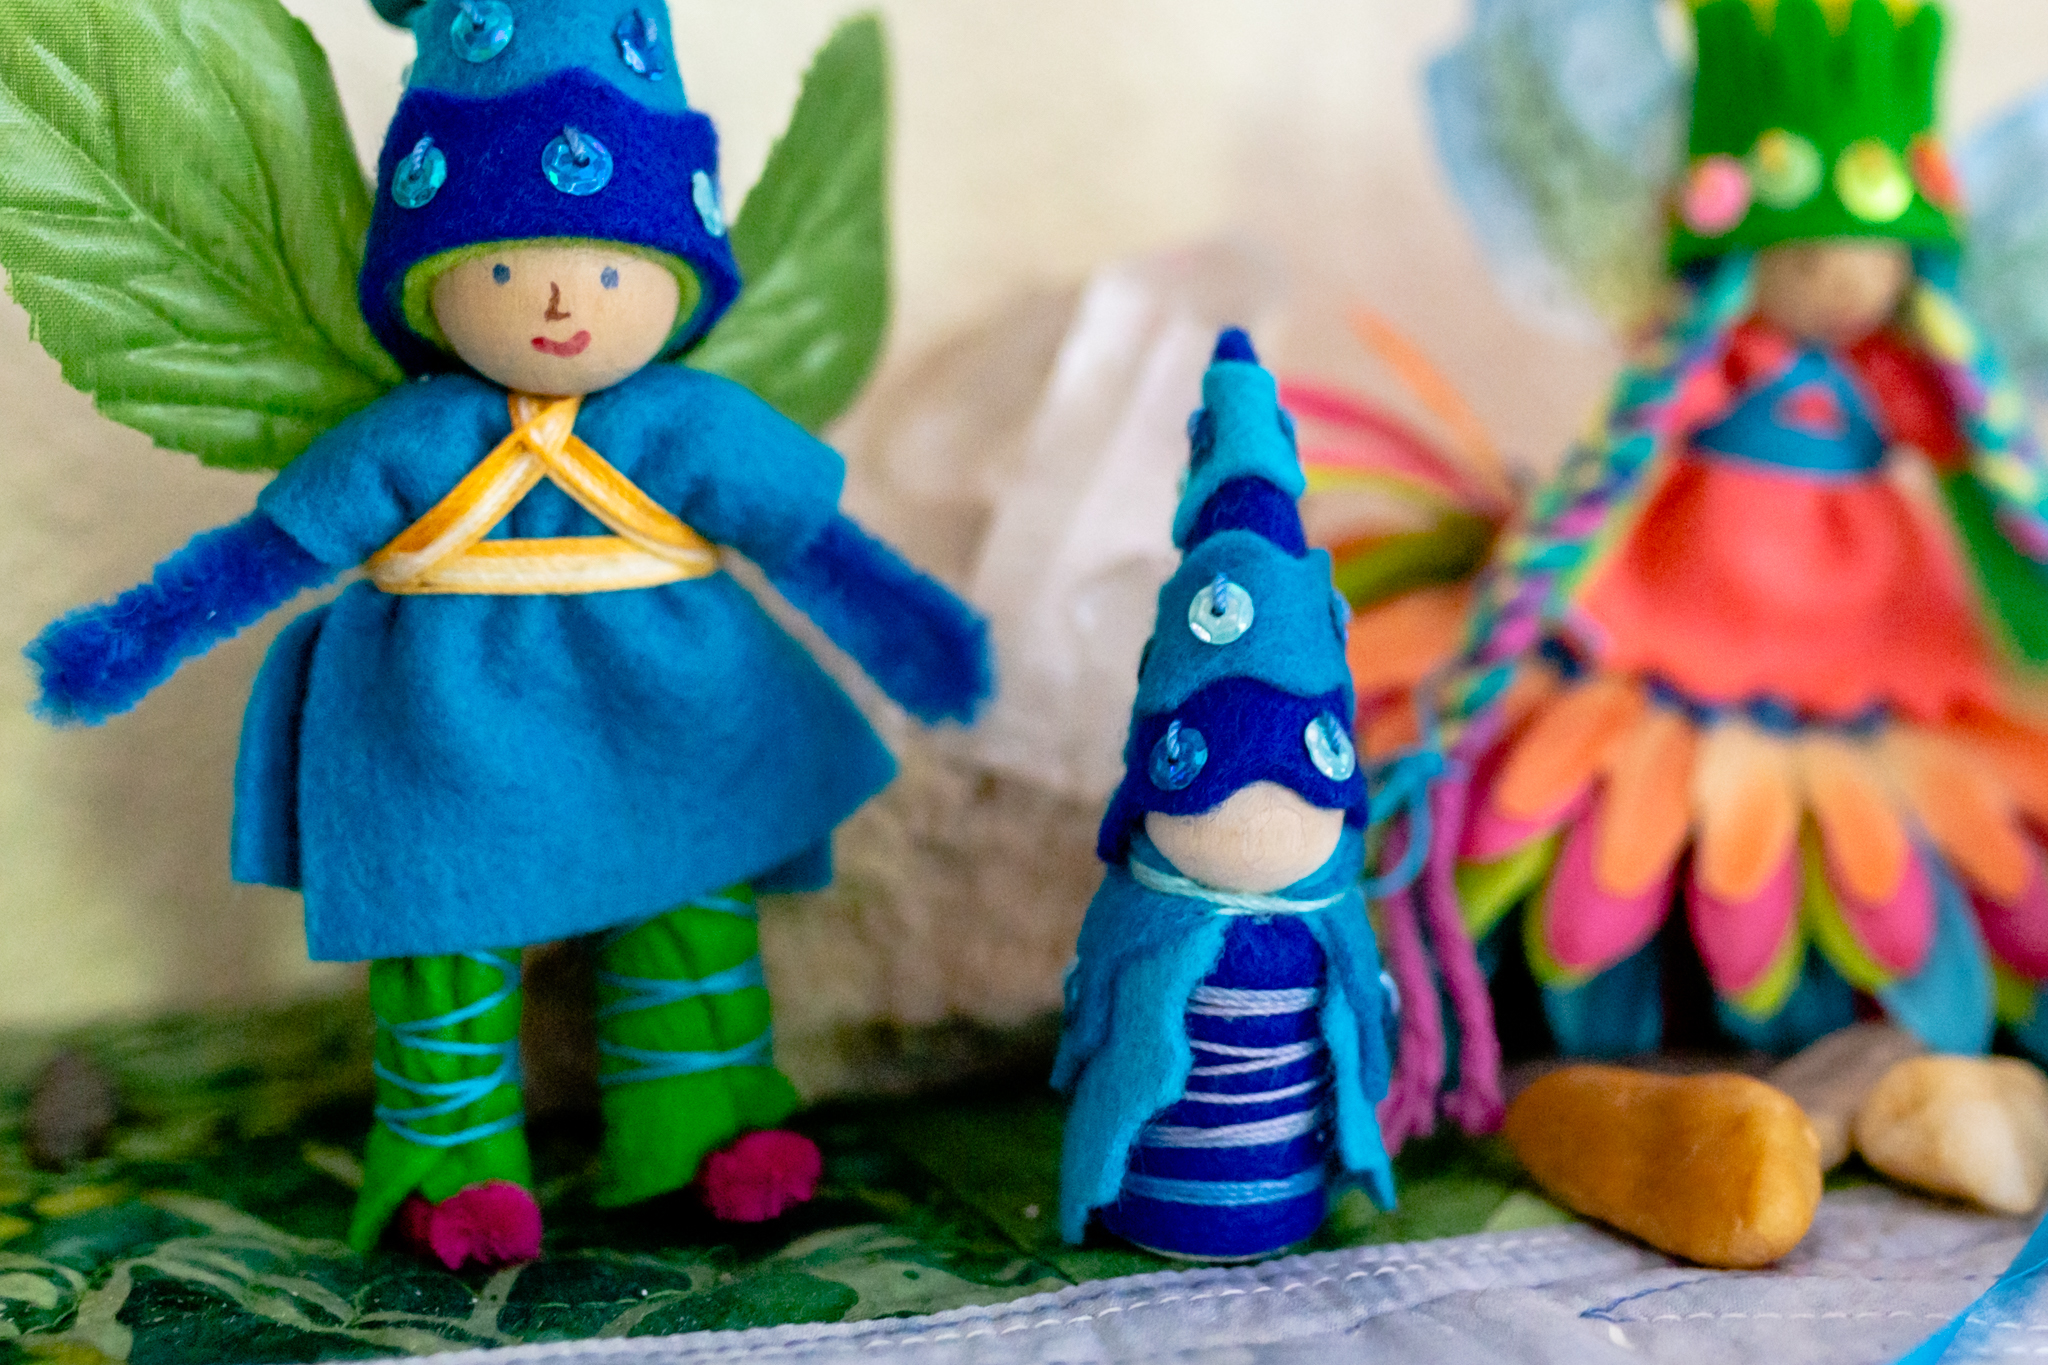 Gnome and his friends gather to celebrate the new book